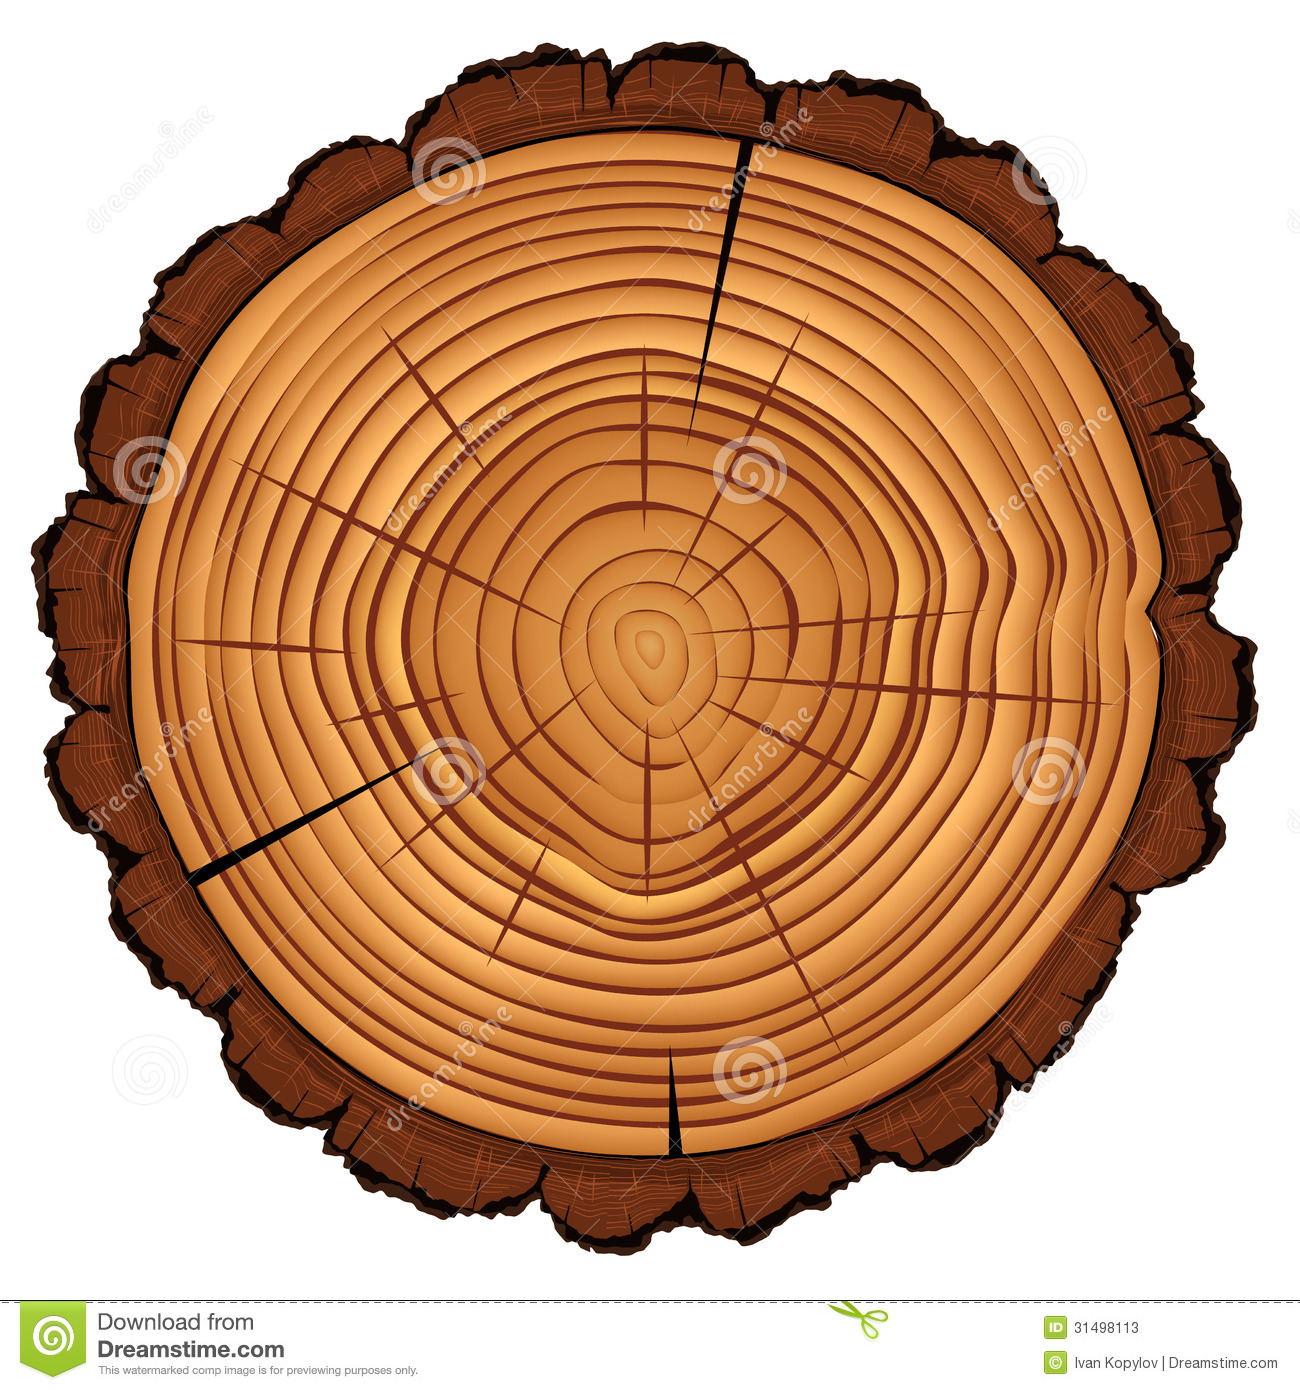 Displaying 15> Images For - Tree Stump Top Clip Art...